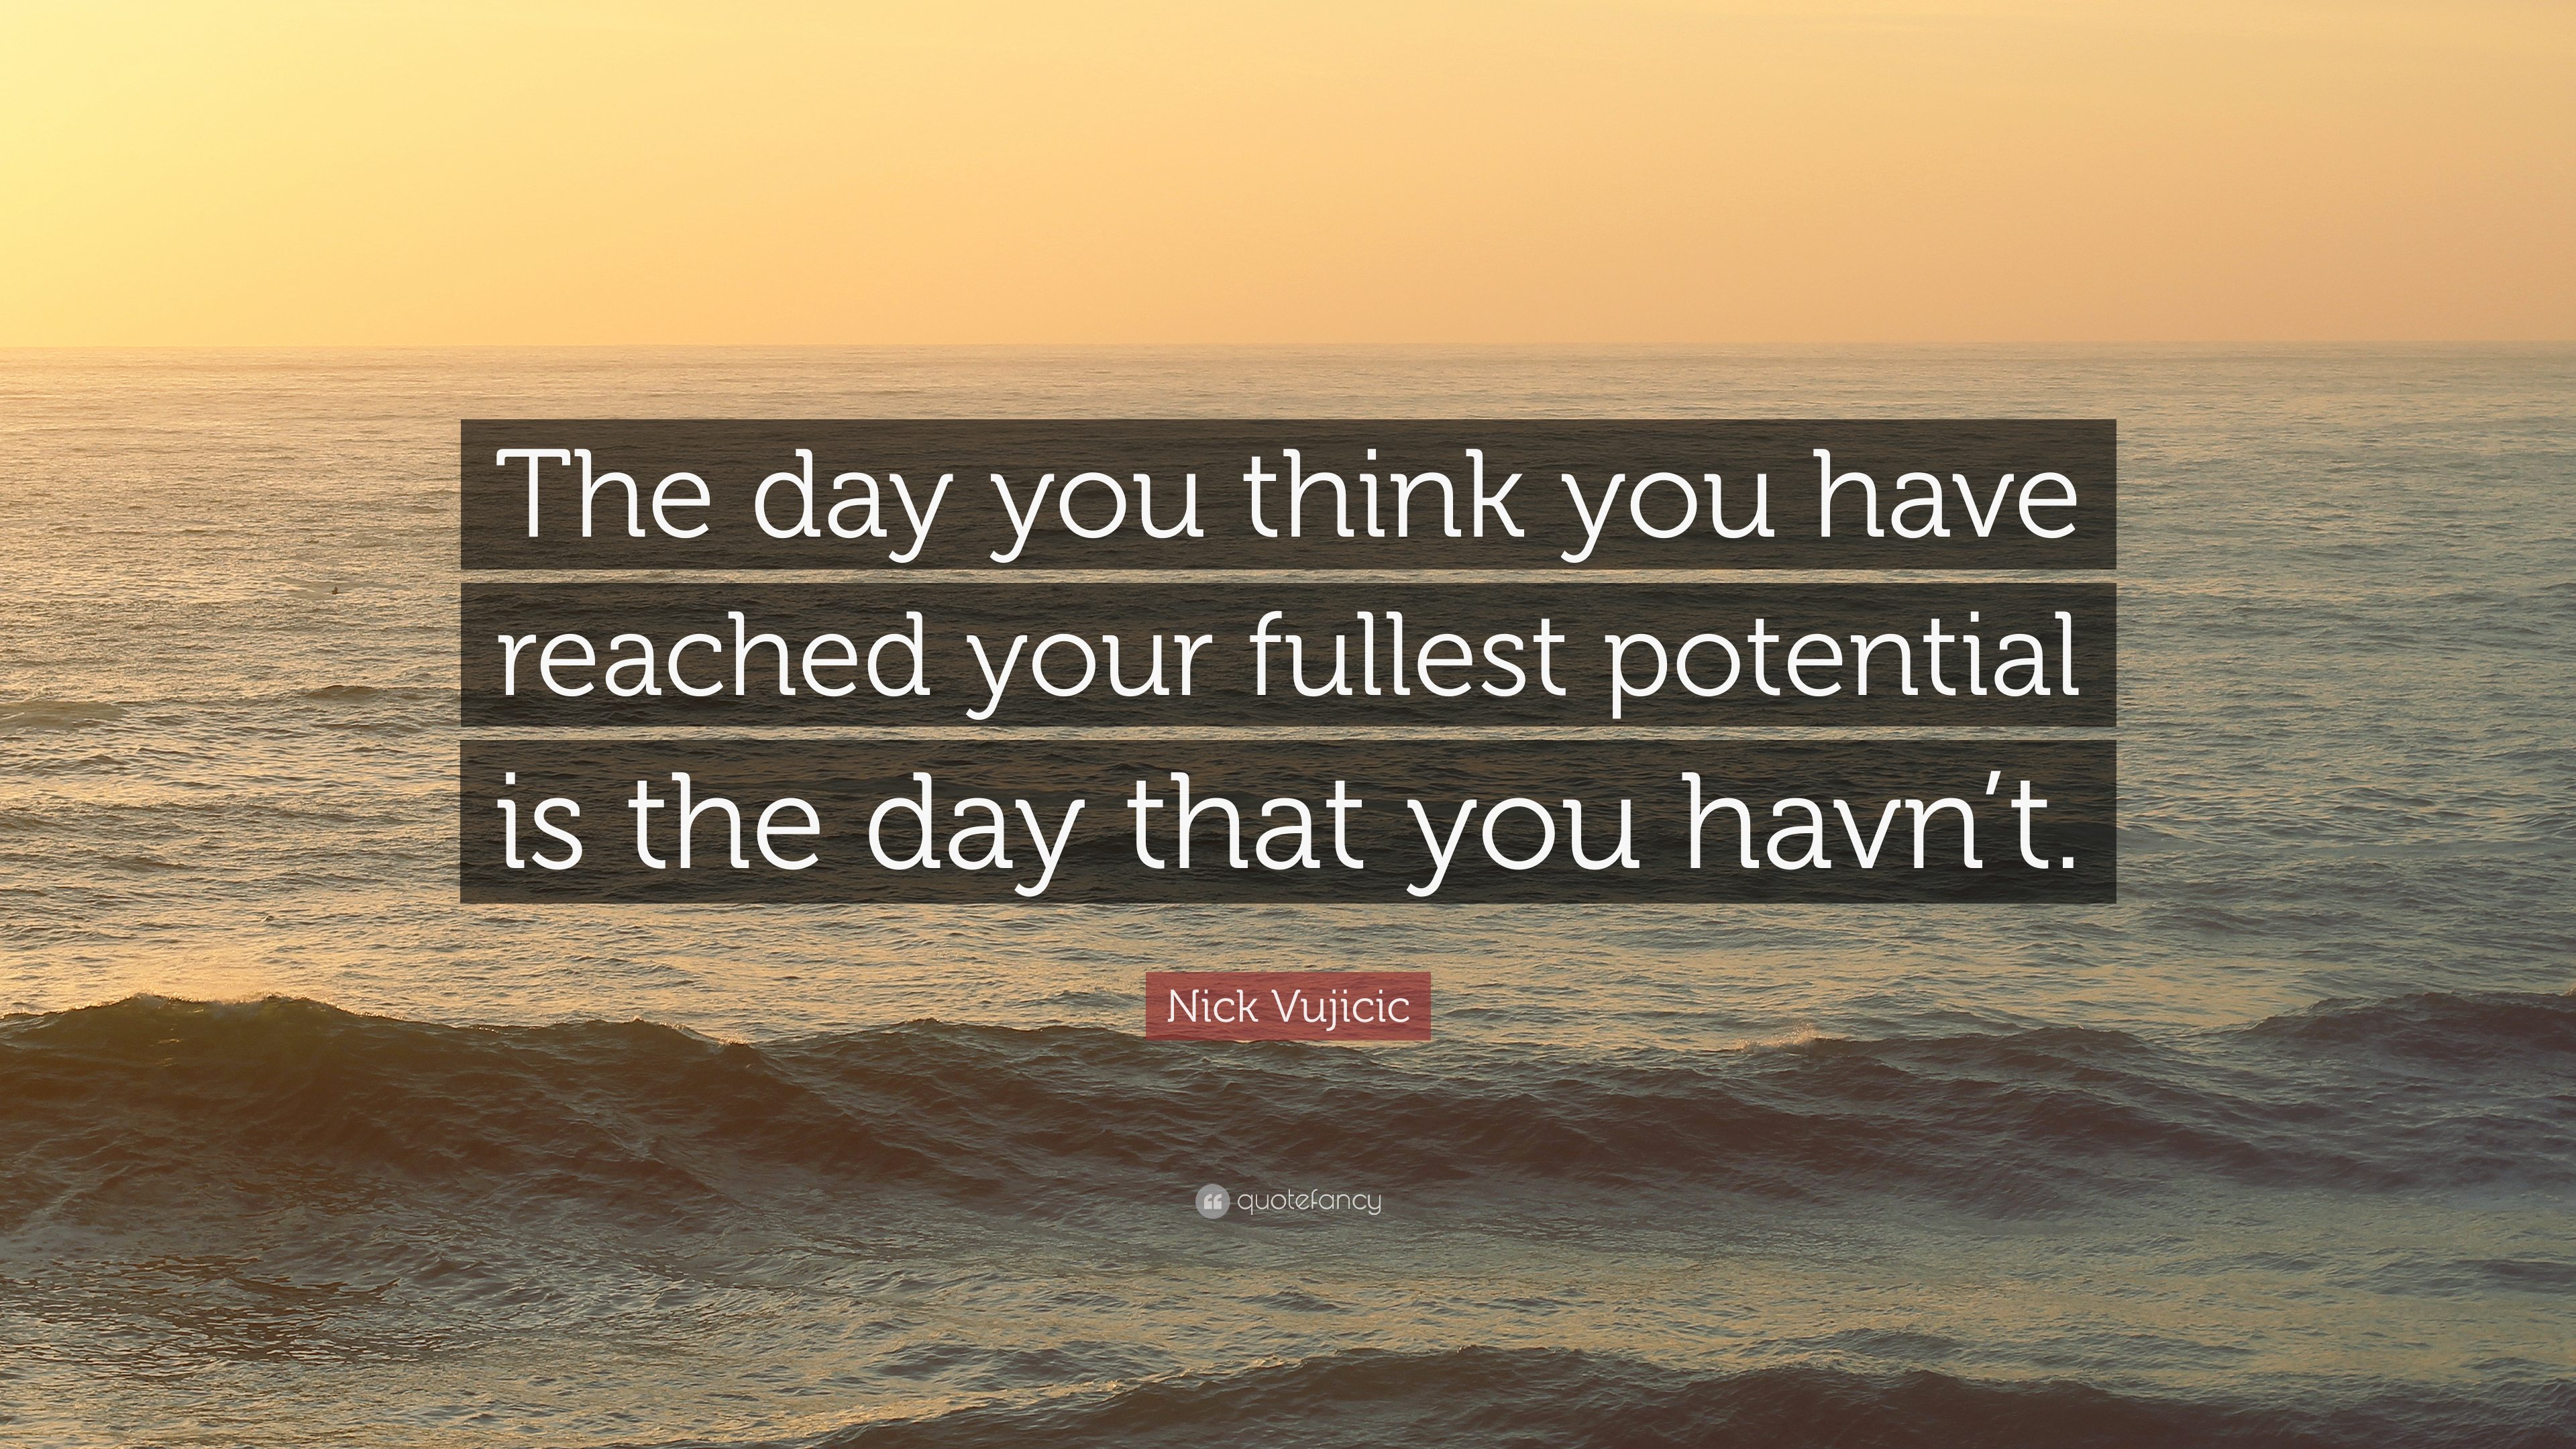 Nick Vujicic Quote The Day You Think You Have Reached Your Fullest Potential Is The Day That You Havn T 10 Wallpapers Quotefancy